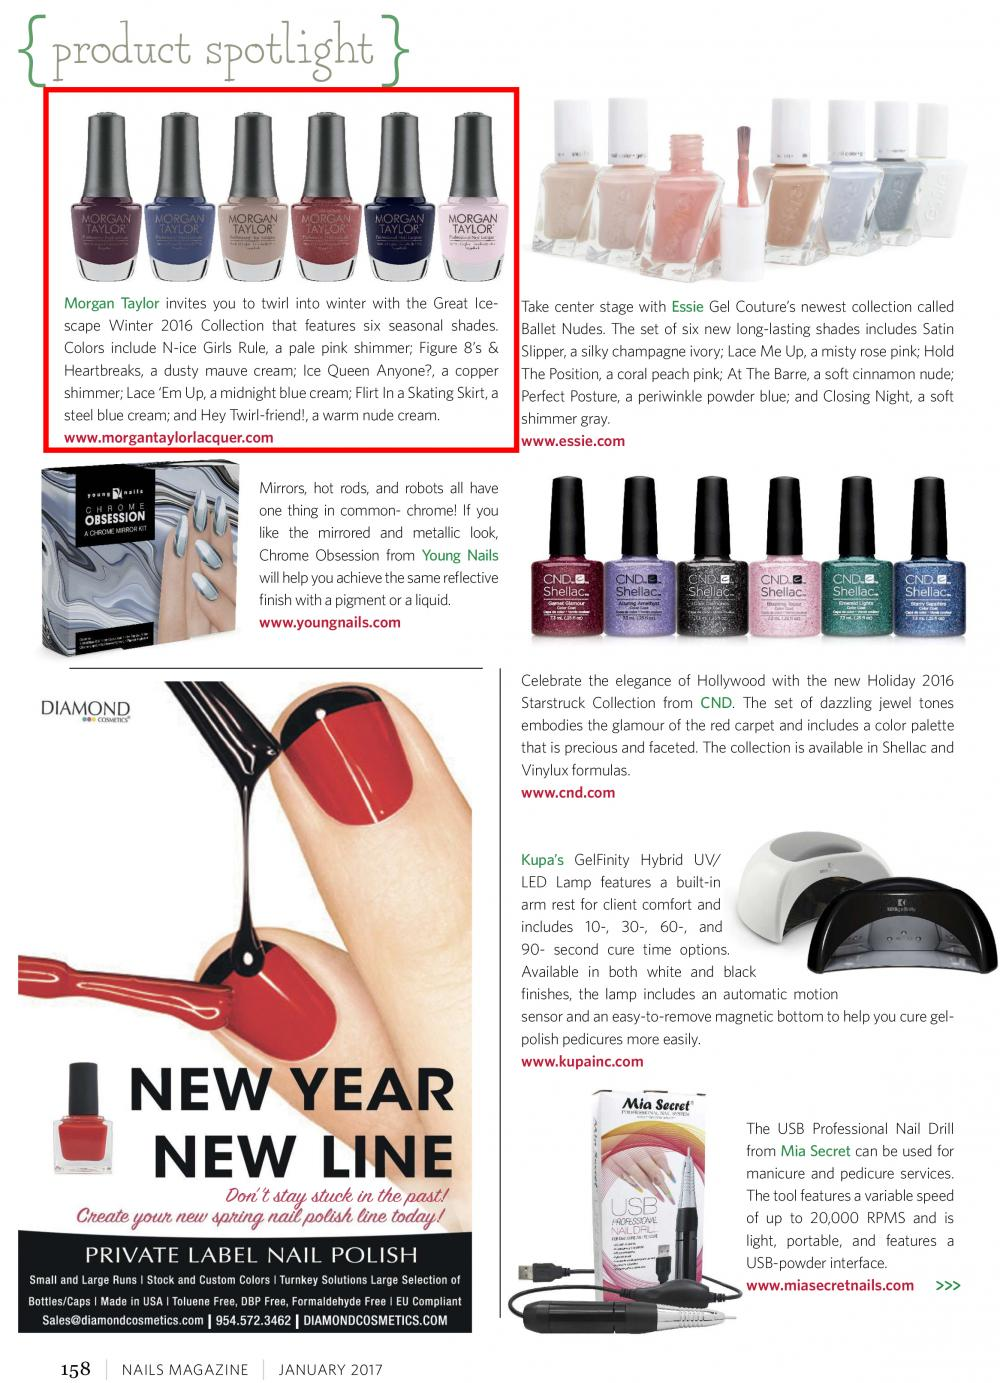 NAILS MAGAZINE - January, 2017